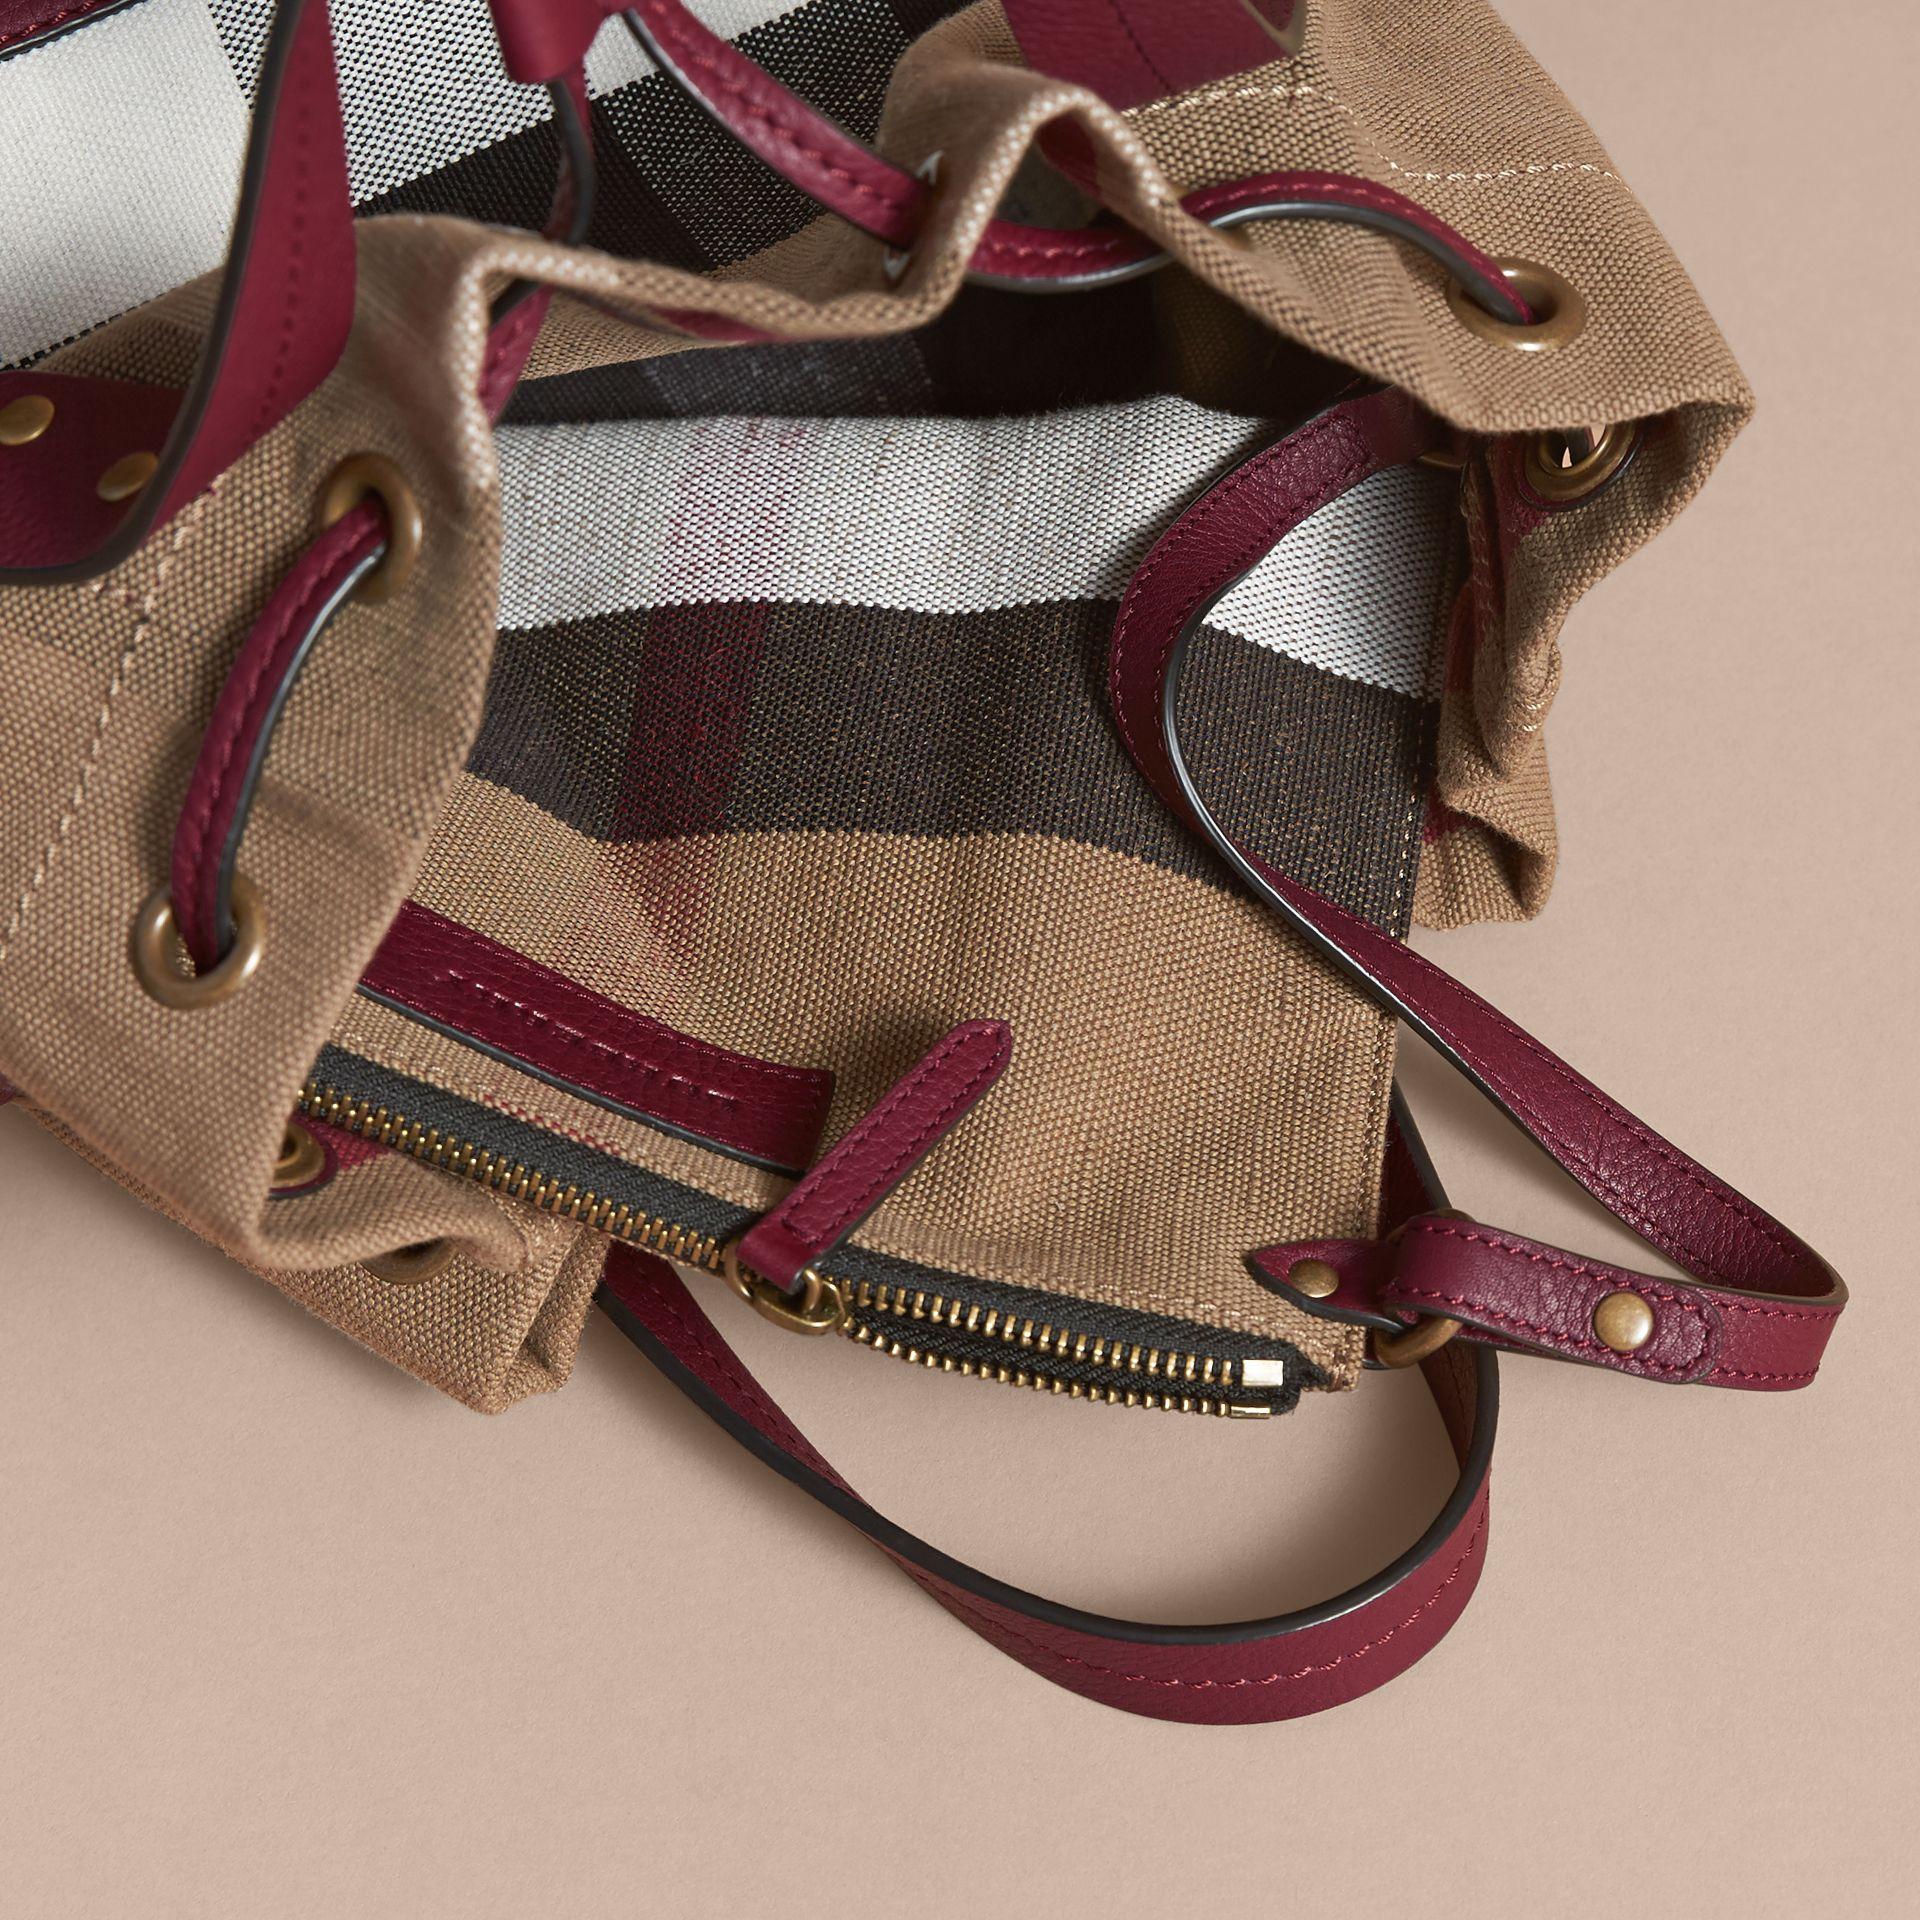 Small Canvas Check and Leather Bucket Bag in Burgundy Red - Women | Burberry Singapore - gallery image 6